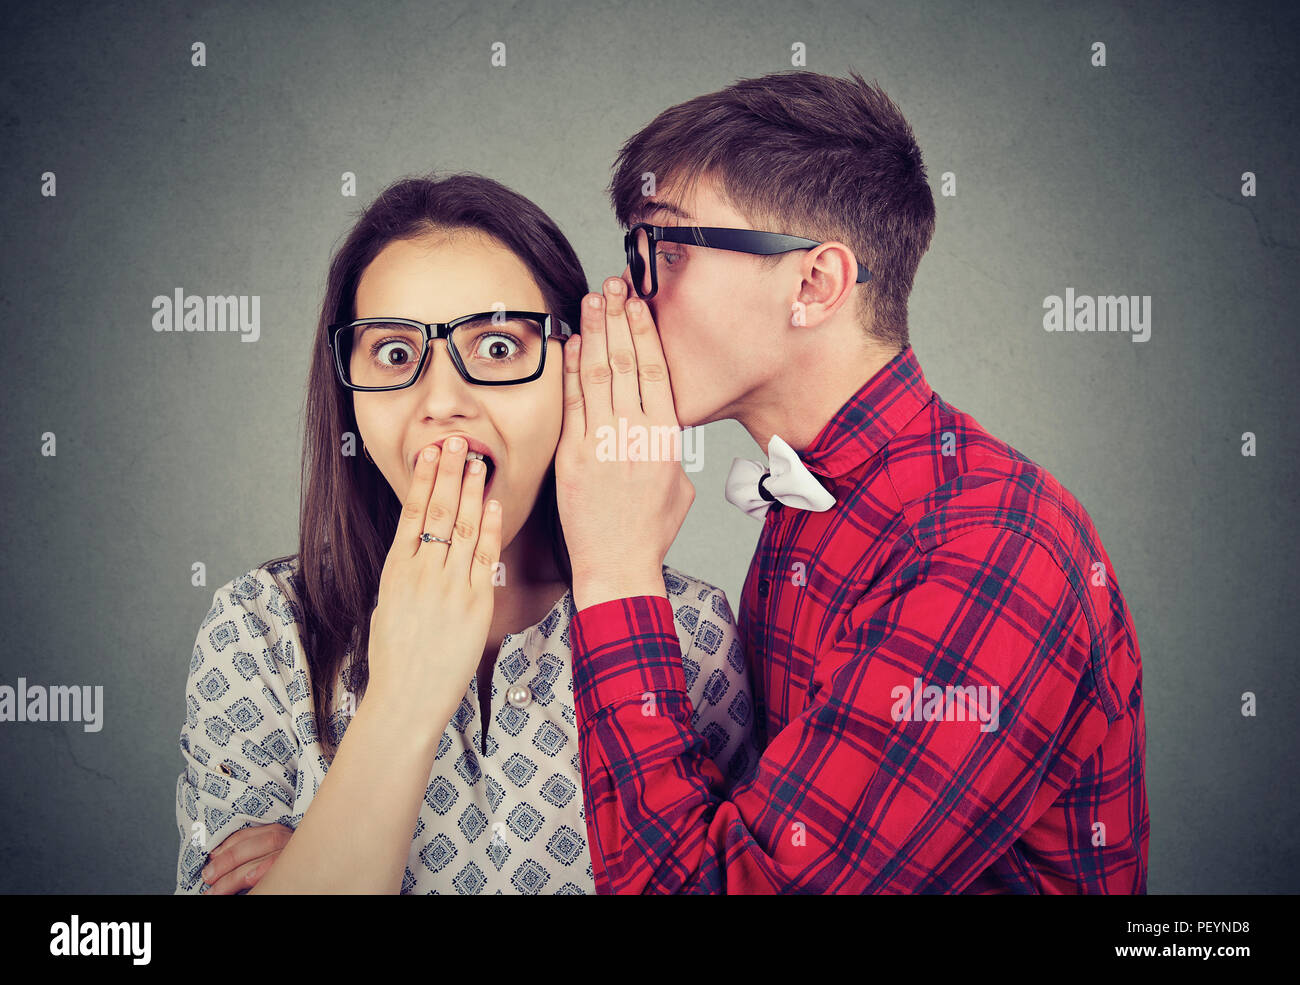 Young man in glasses telling secret to woman looking shocked while standing on gray background - Stock Image